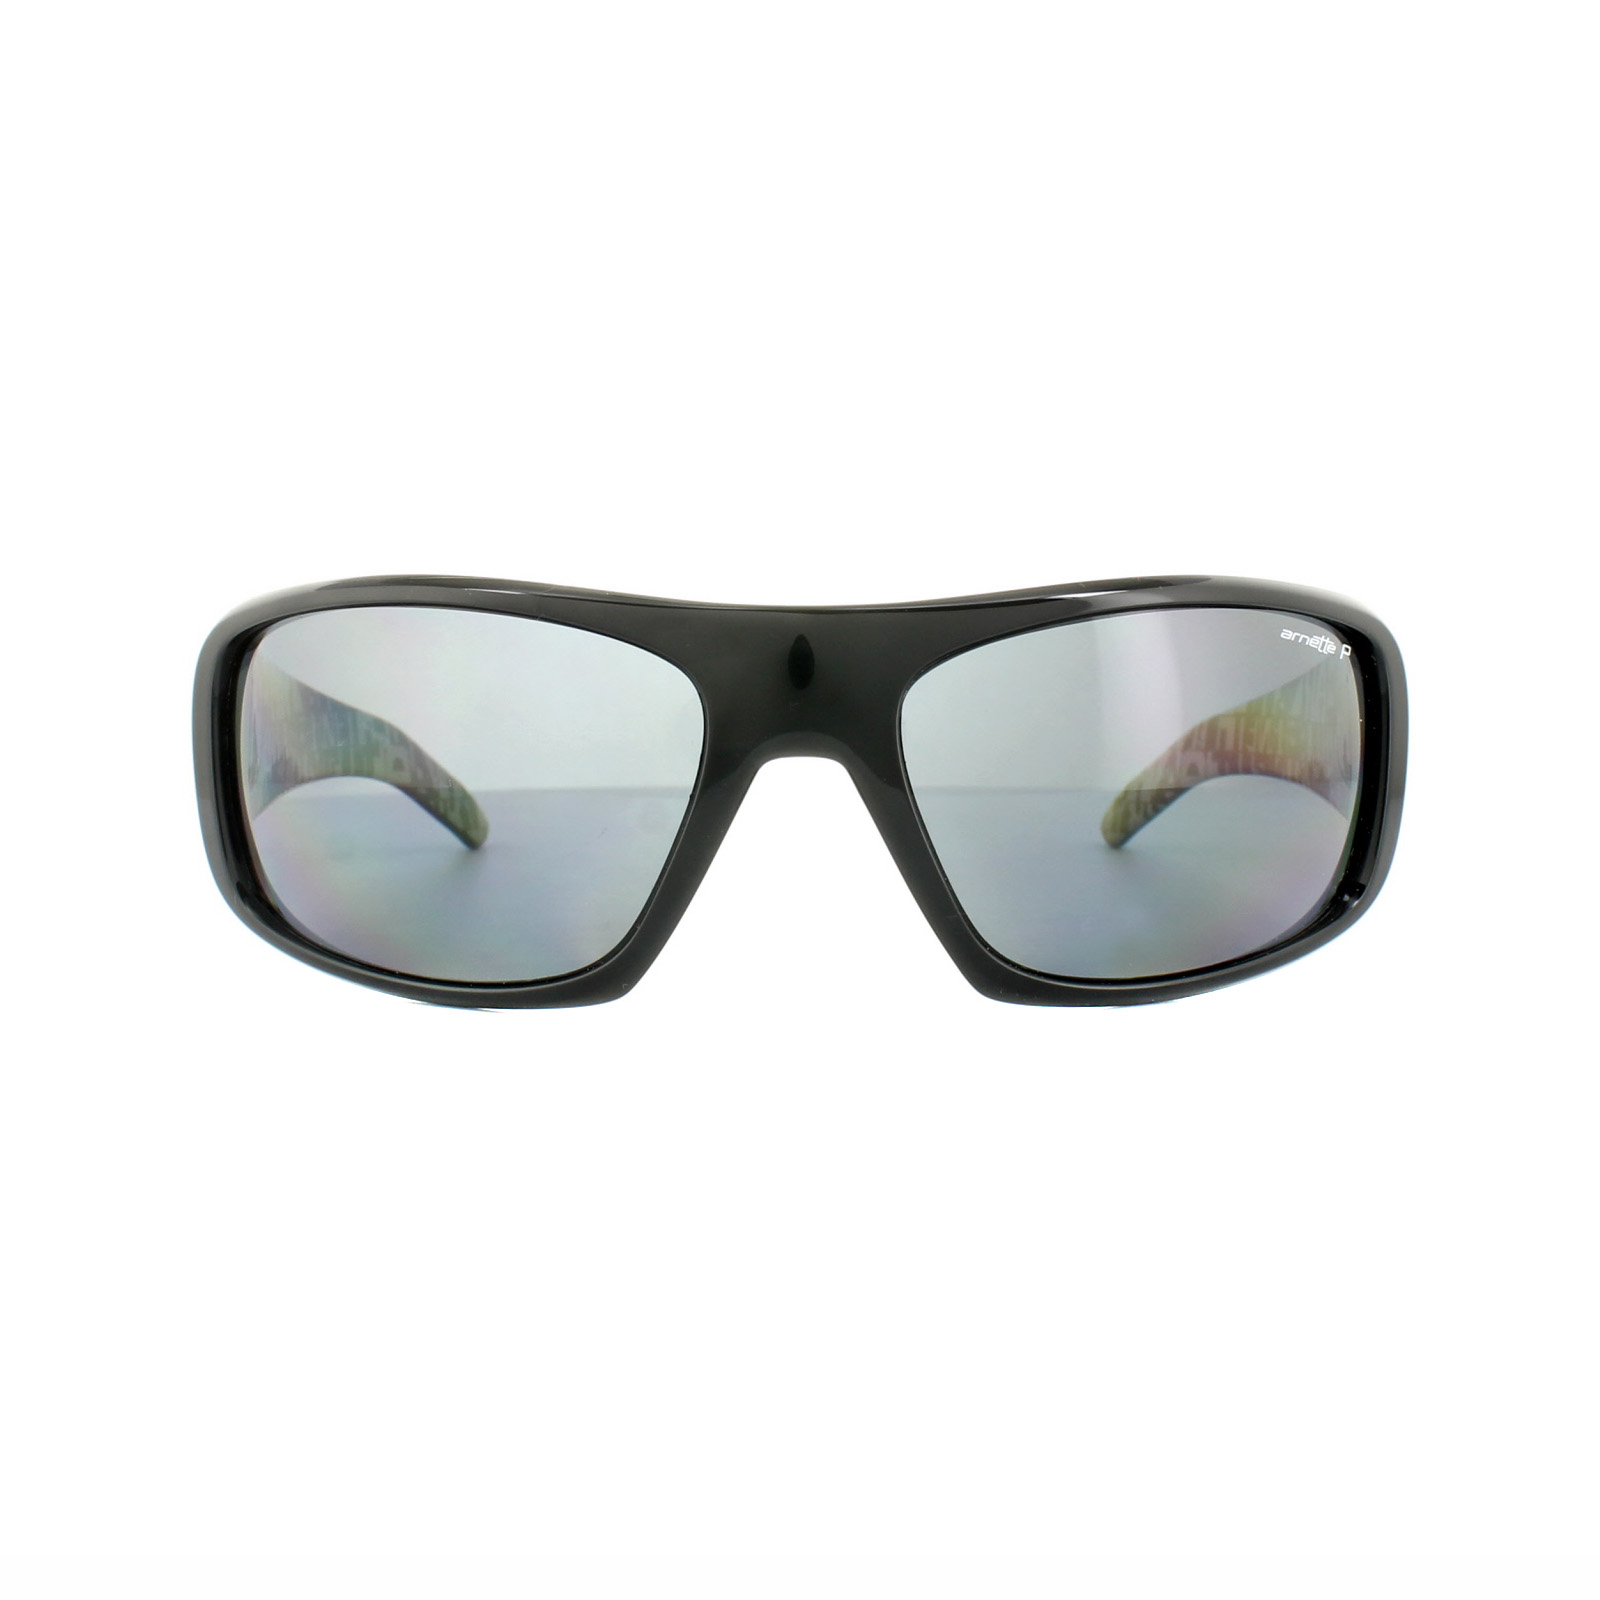 bf5966275b Sentinel Thumbnail 2. Sentinel Arnette Sunglasses Hot Shot 4182 214981  Polished Black Graphics Grey Polarized